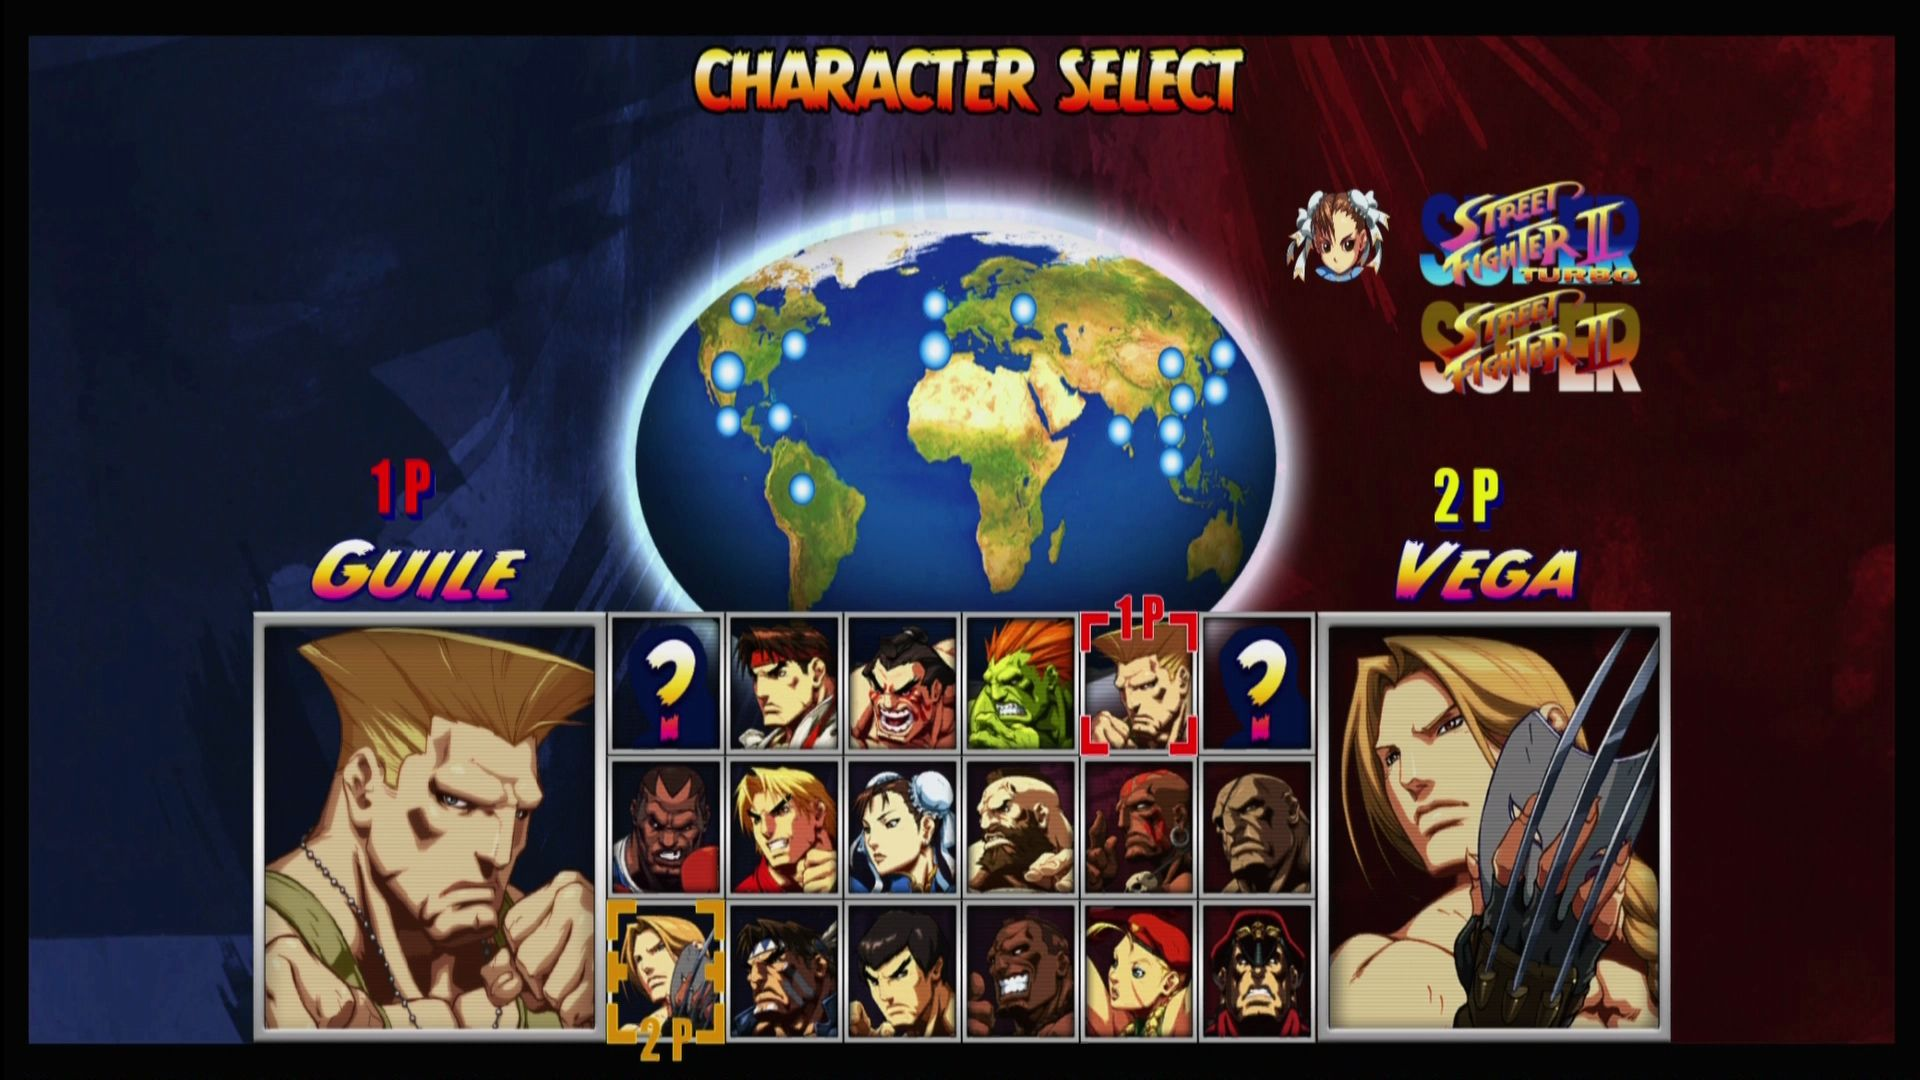 Super Street Fighter II Turbo HD Remix Xbox 360 Select a character, with multiple color variations from the different releases.